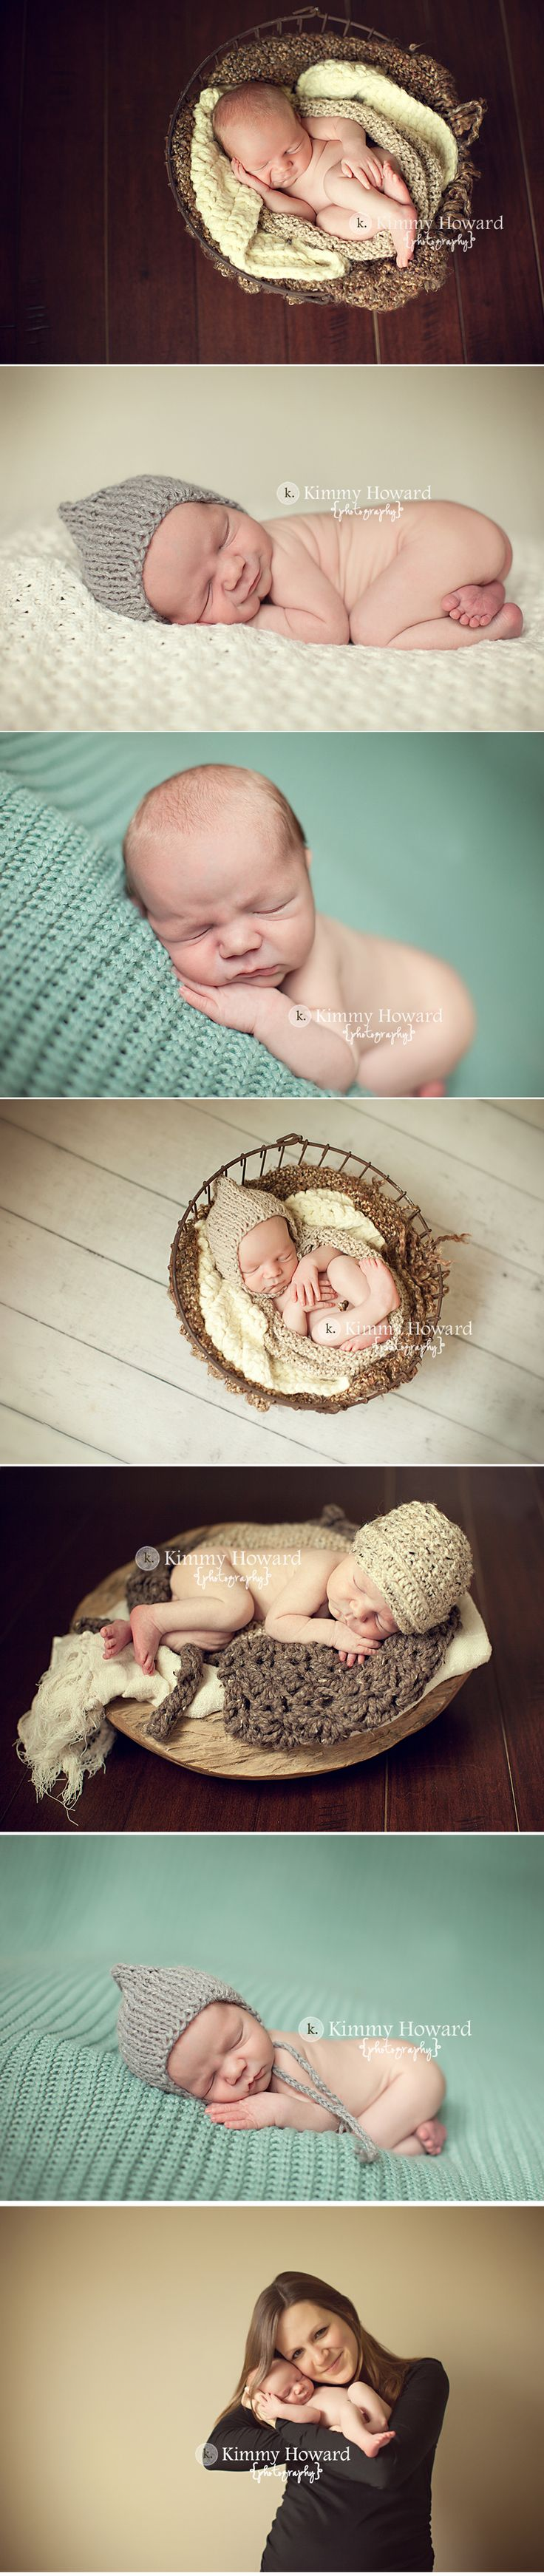 newborn | Kimmy Howard Photography